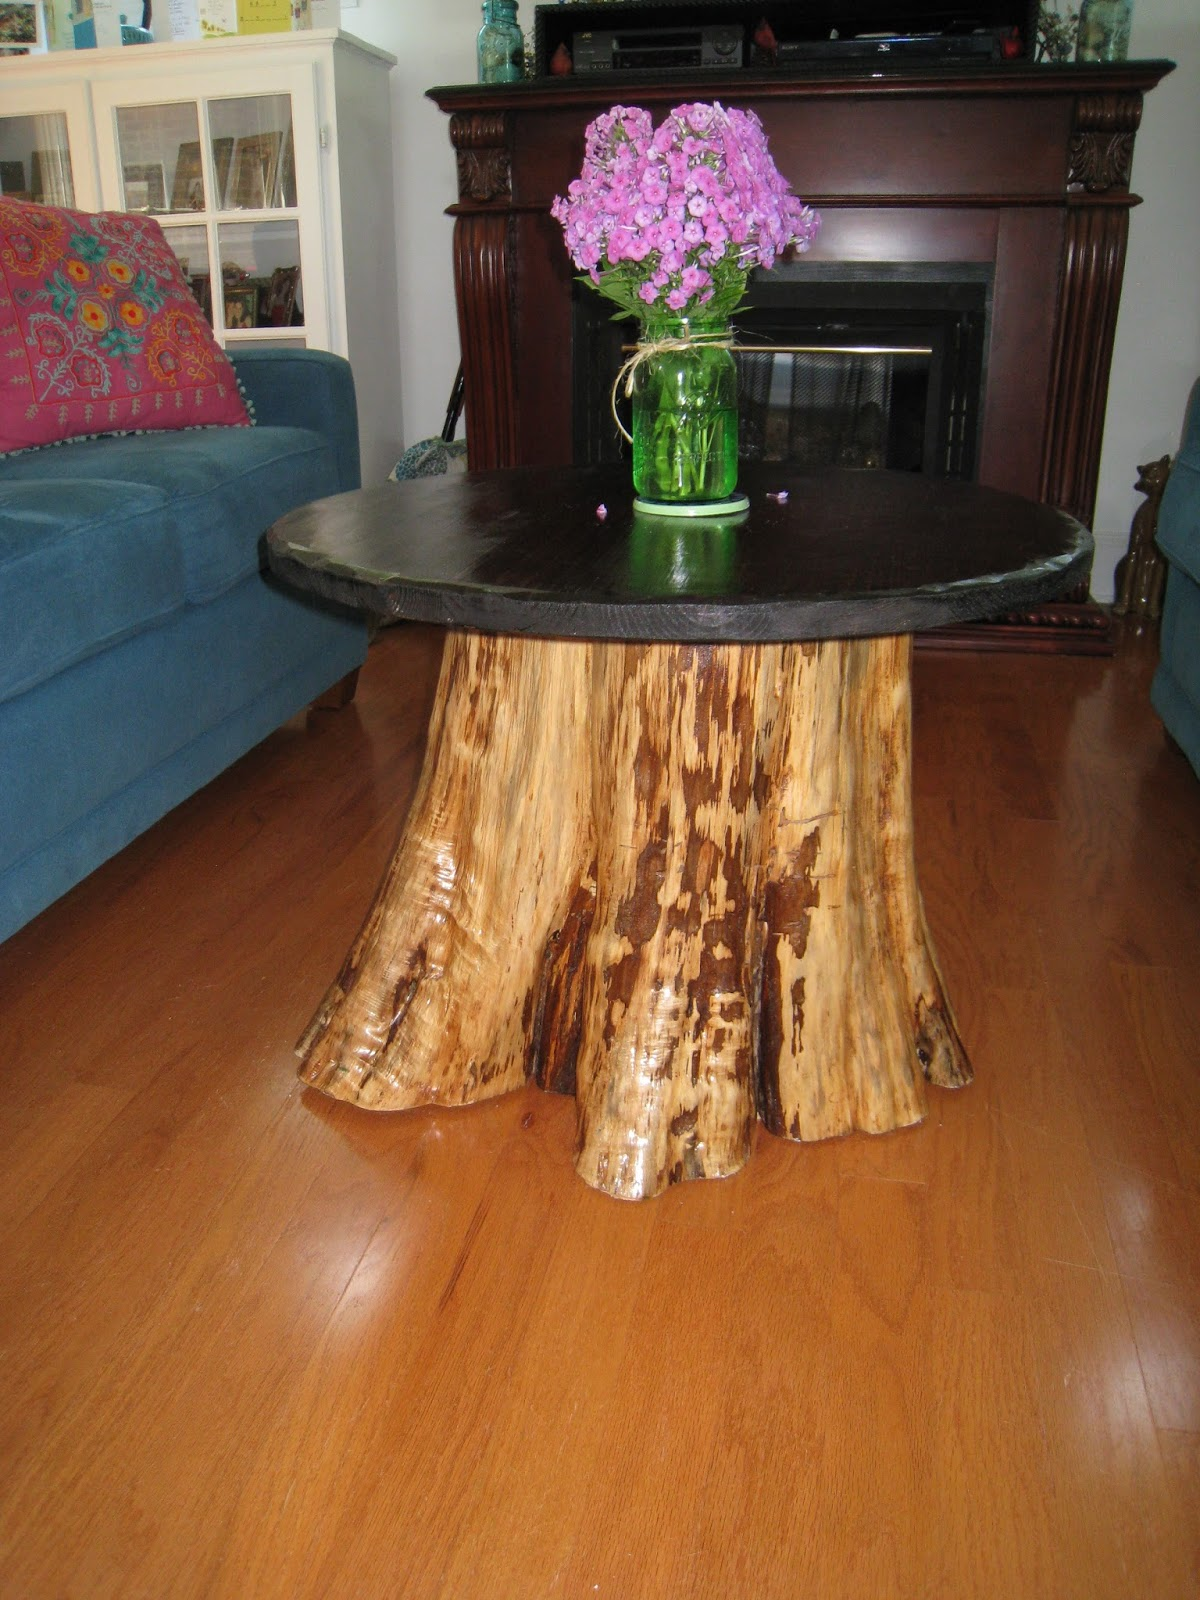 Repurposed For Life FROM CEDAR STUMP TO COFFEE TABLE